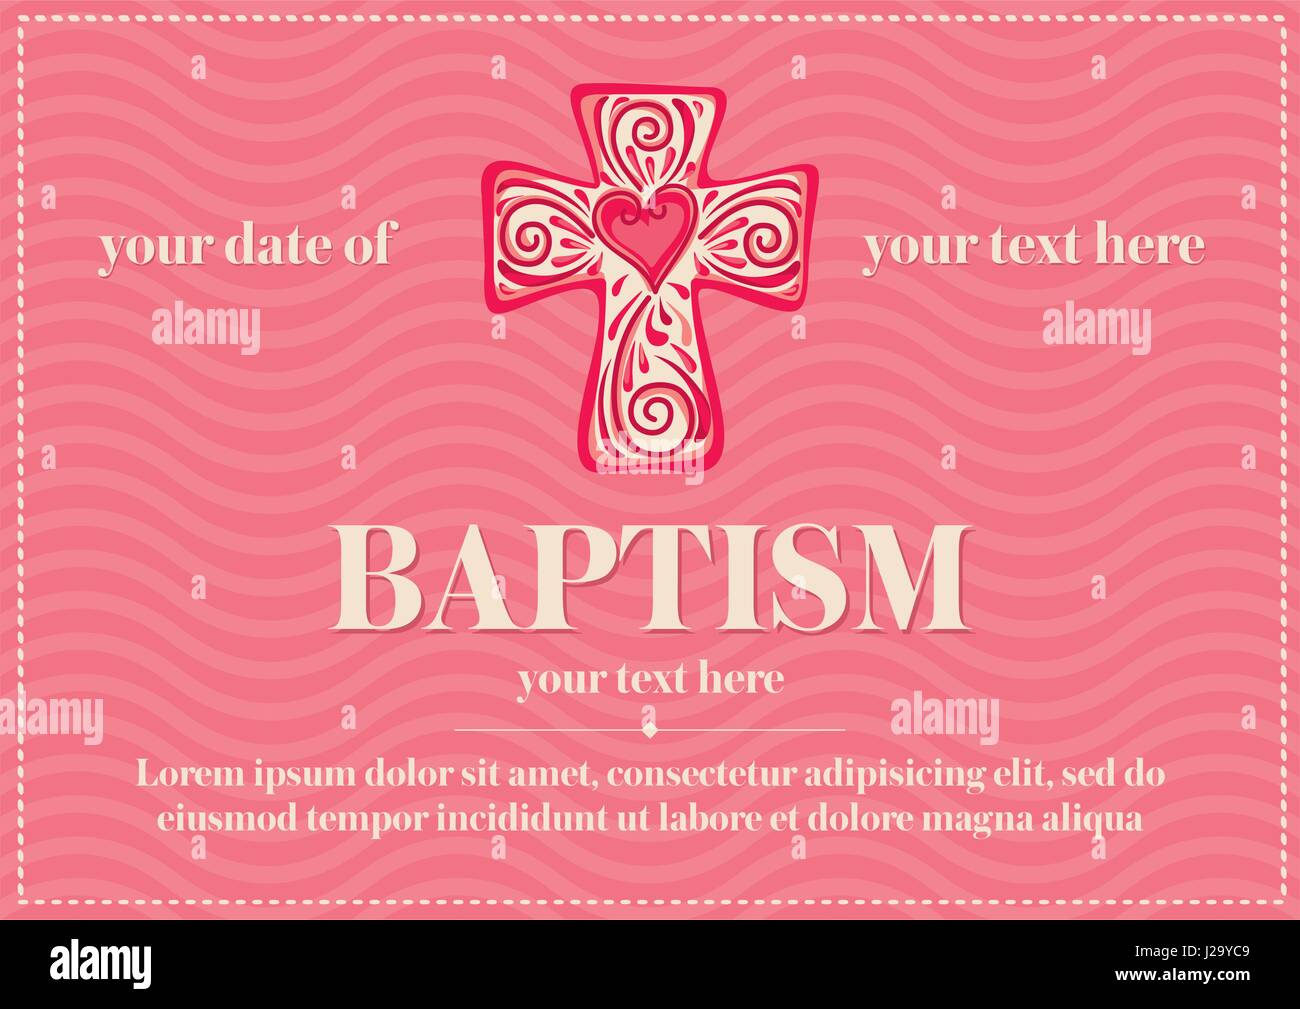 Baptism Invitation Stock Vector Images - Alamy